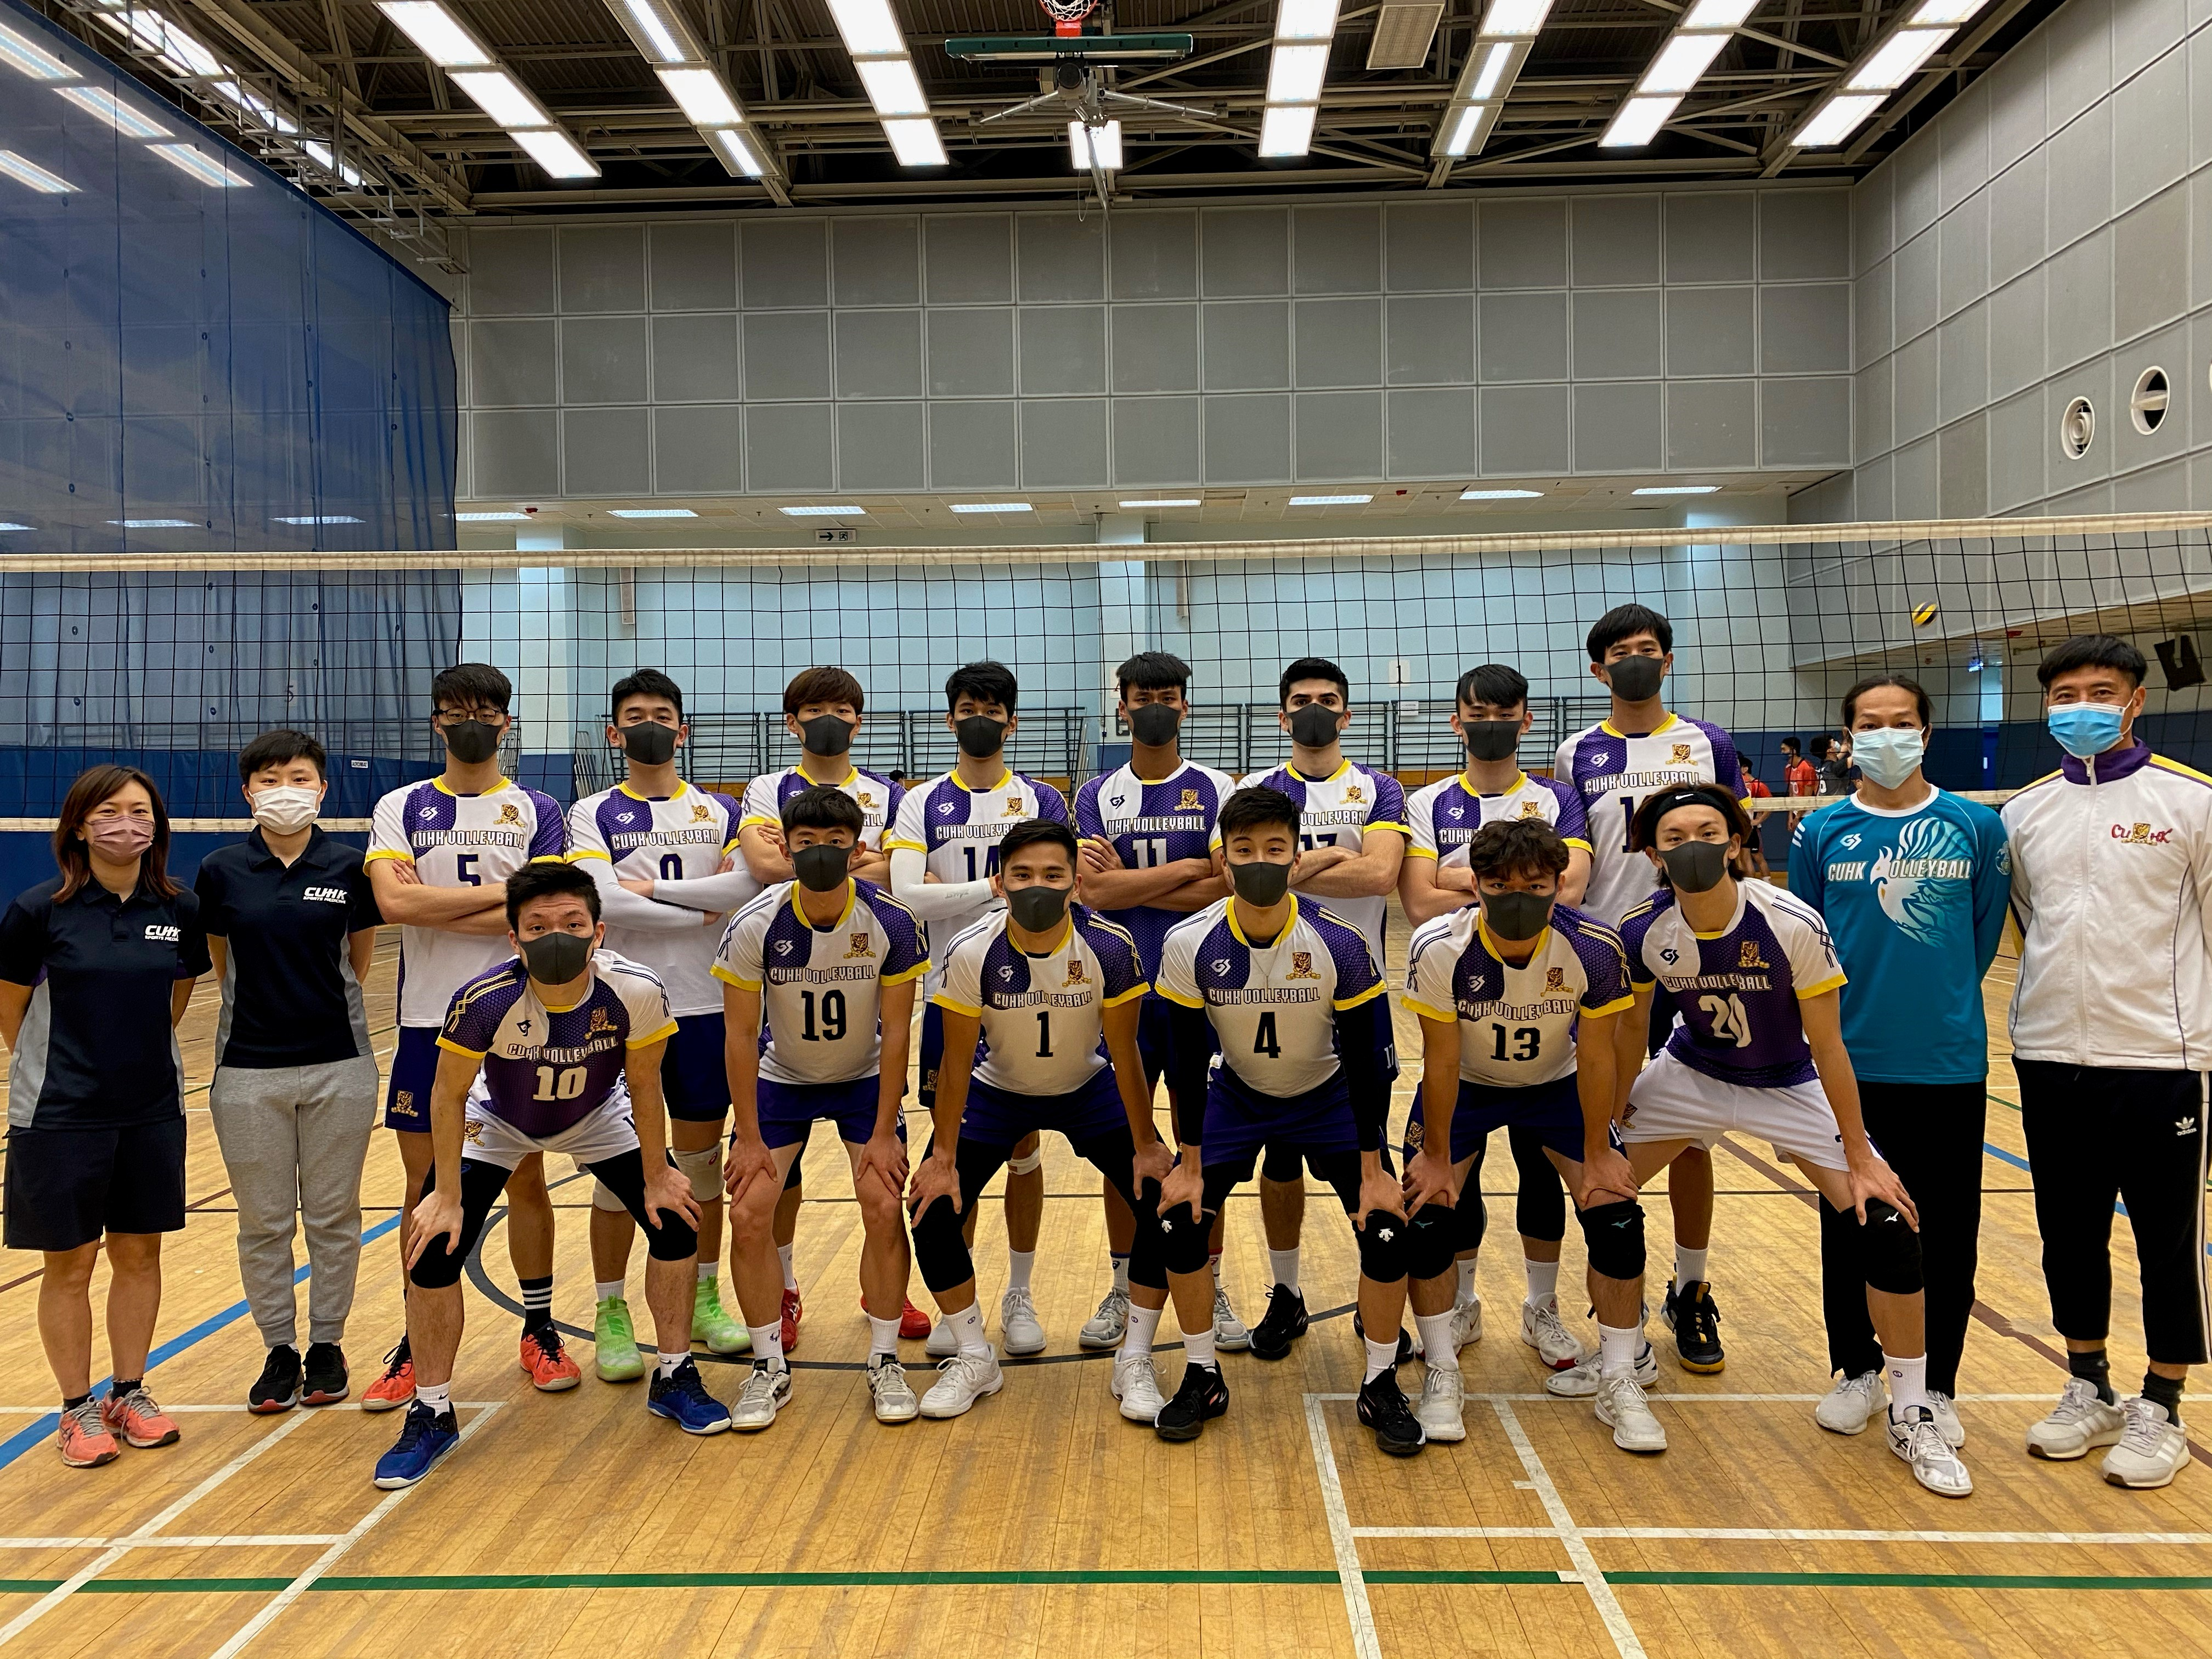 Volleyball boys 2019 2020